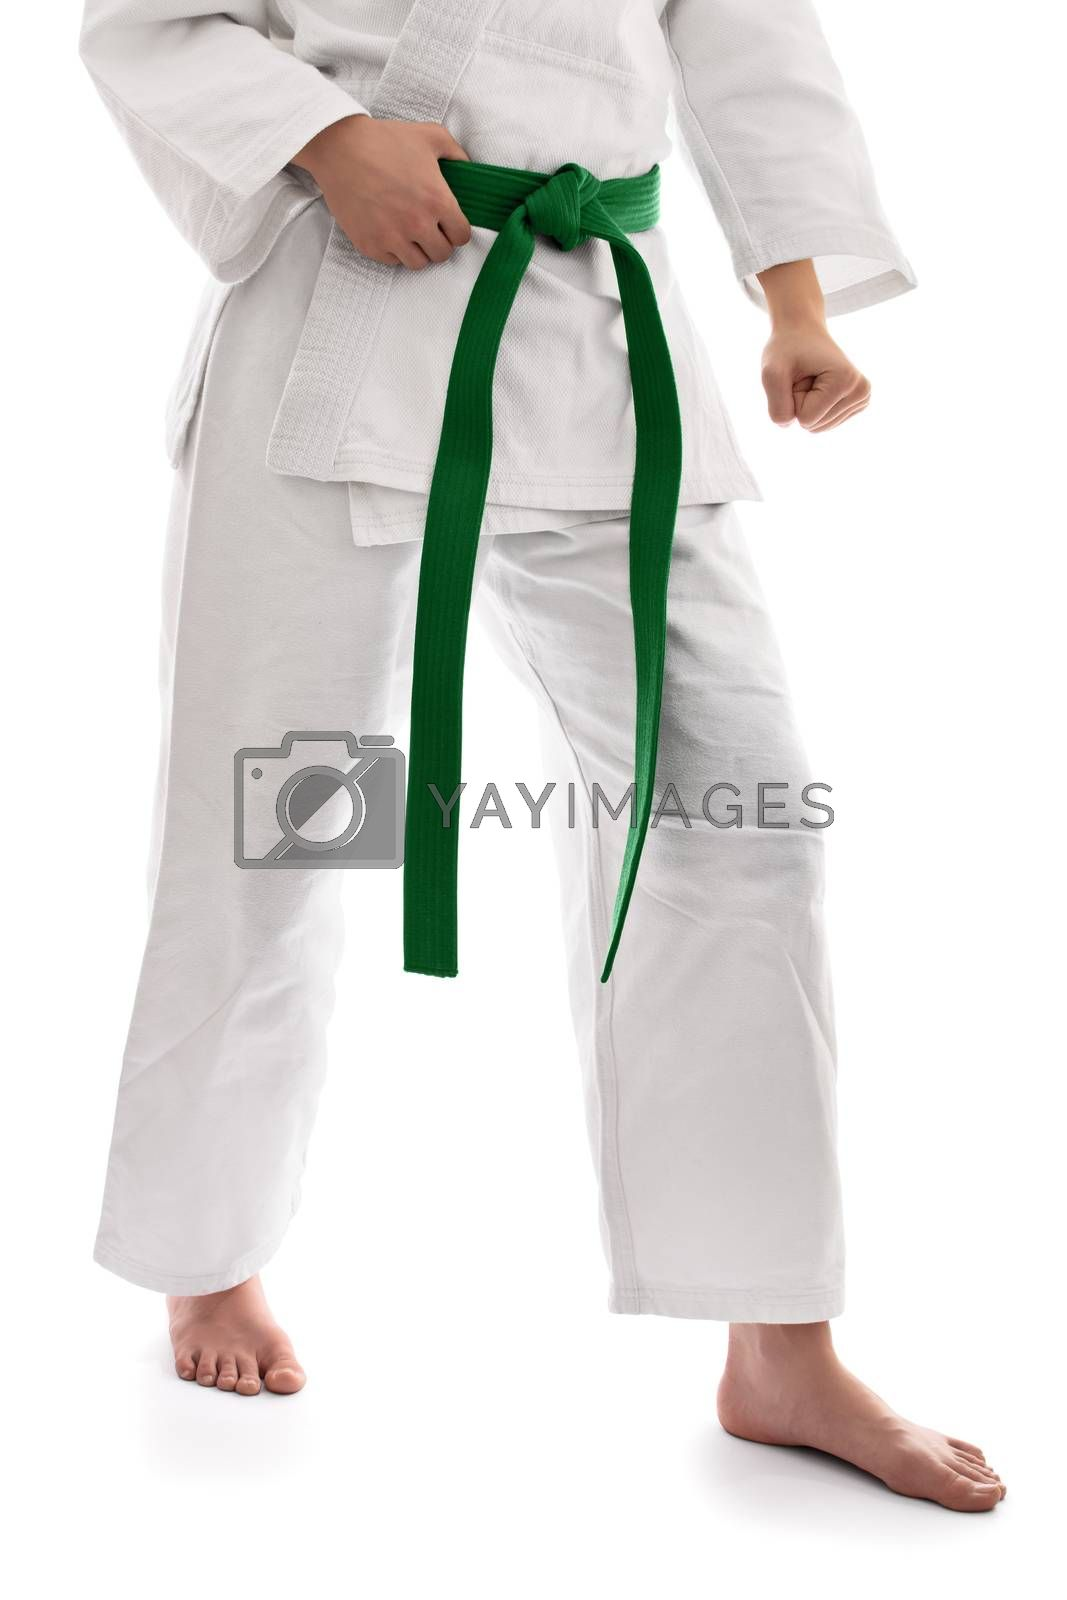 Below the waist shot of a martial arts fighter in white kimono with green belt in a combat stance, isolated on white background.